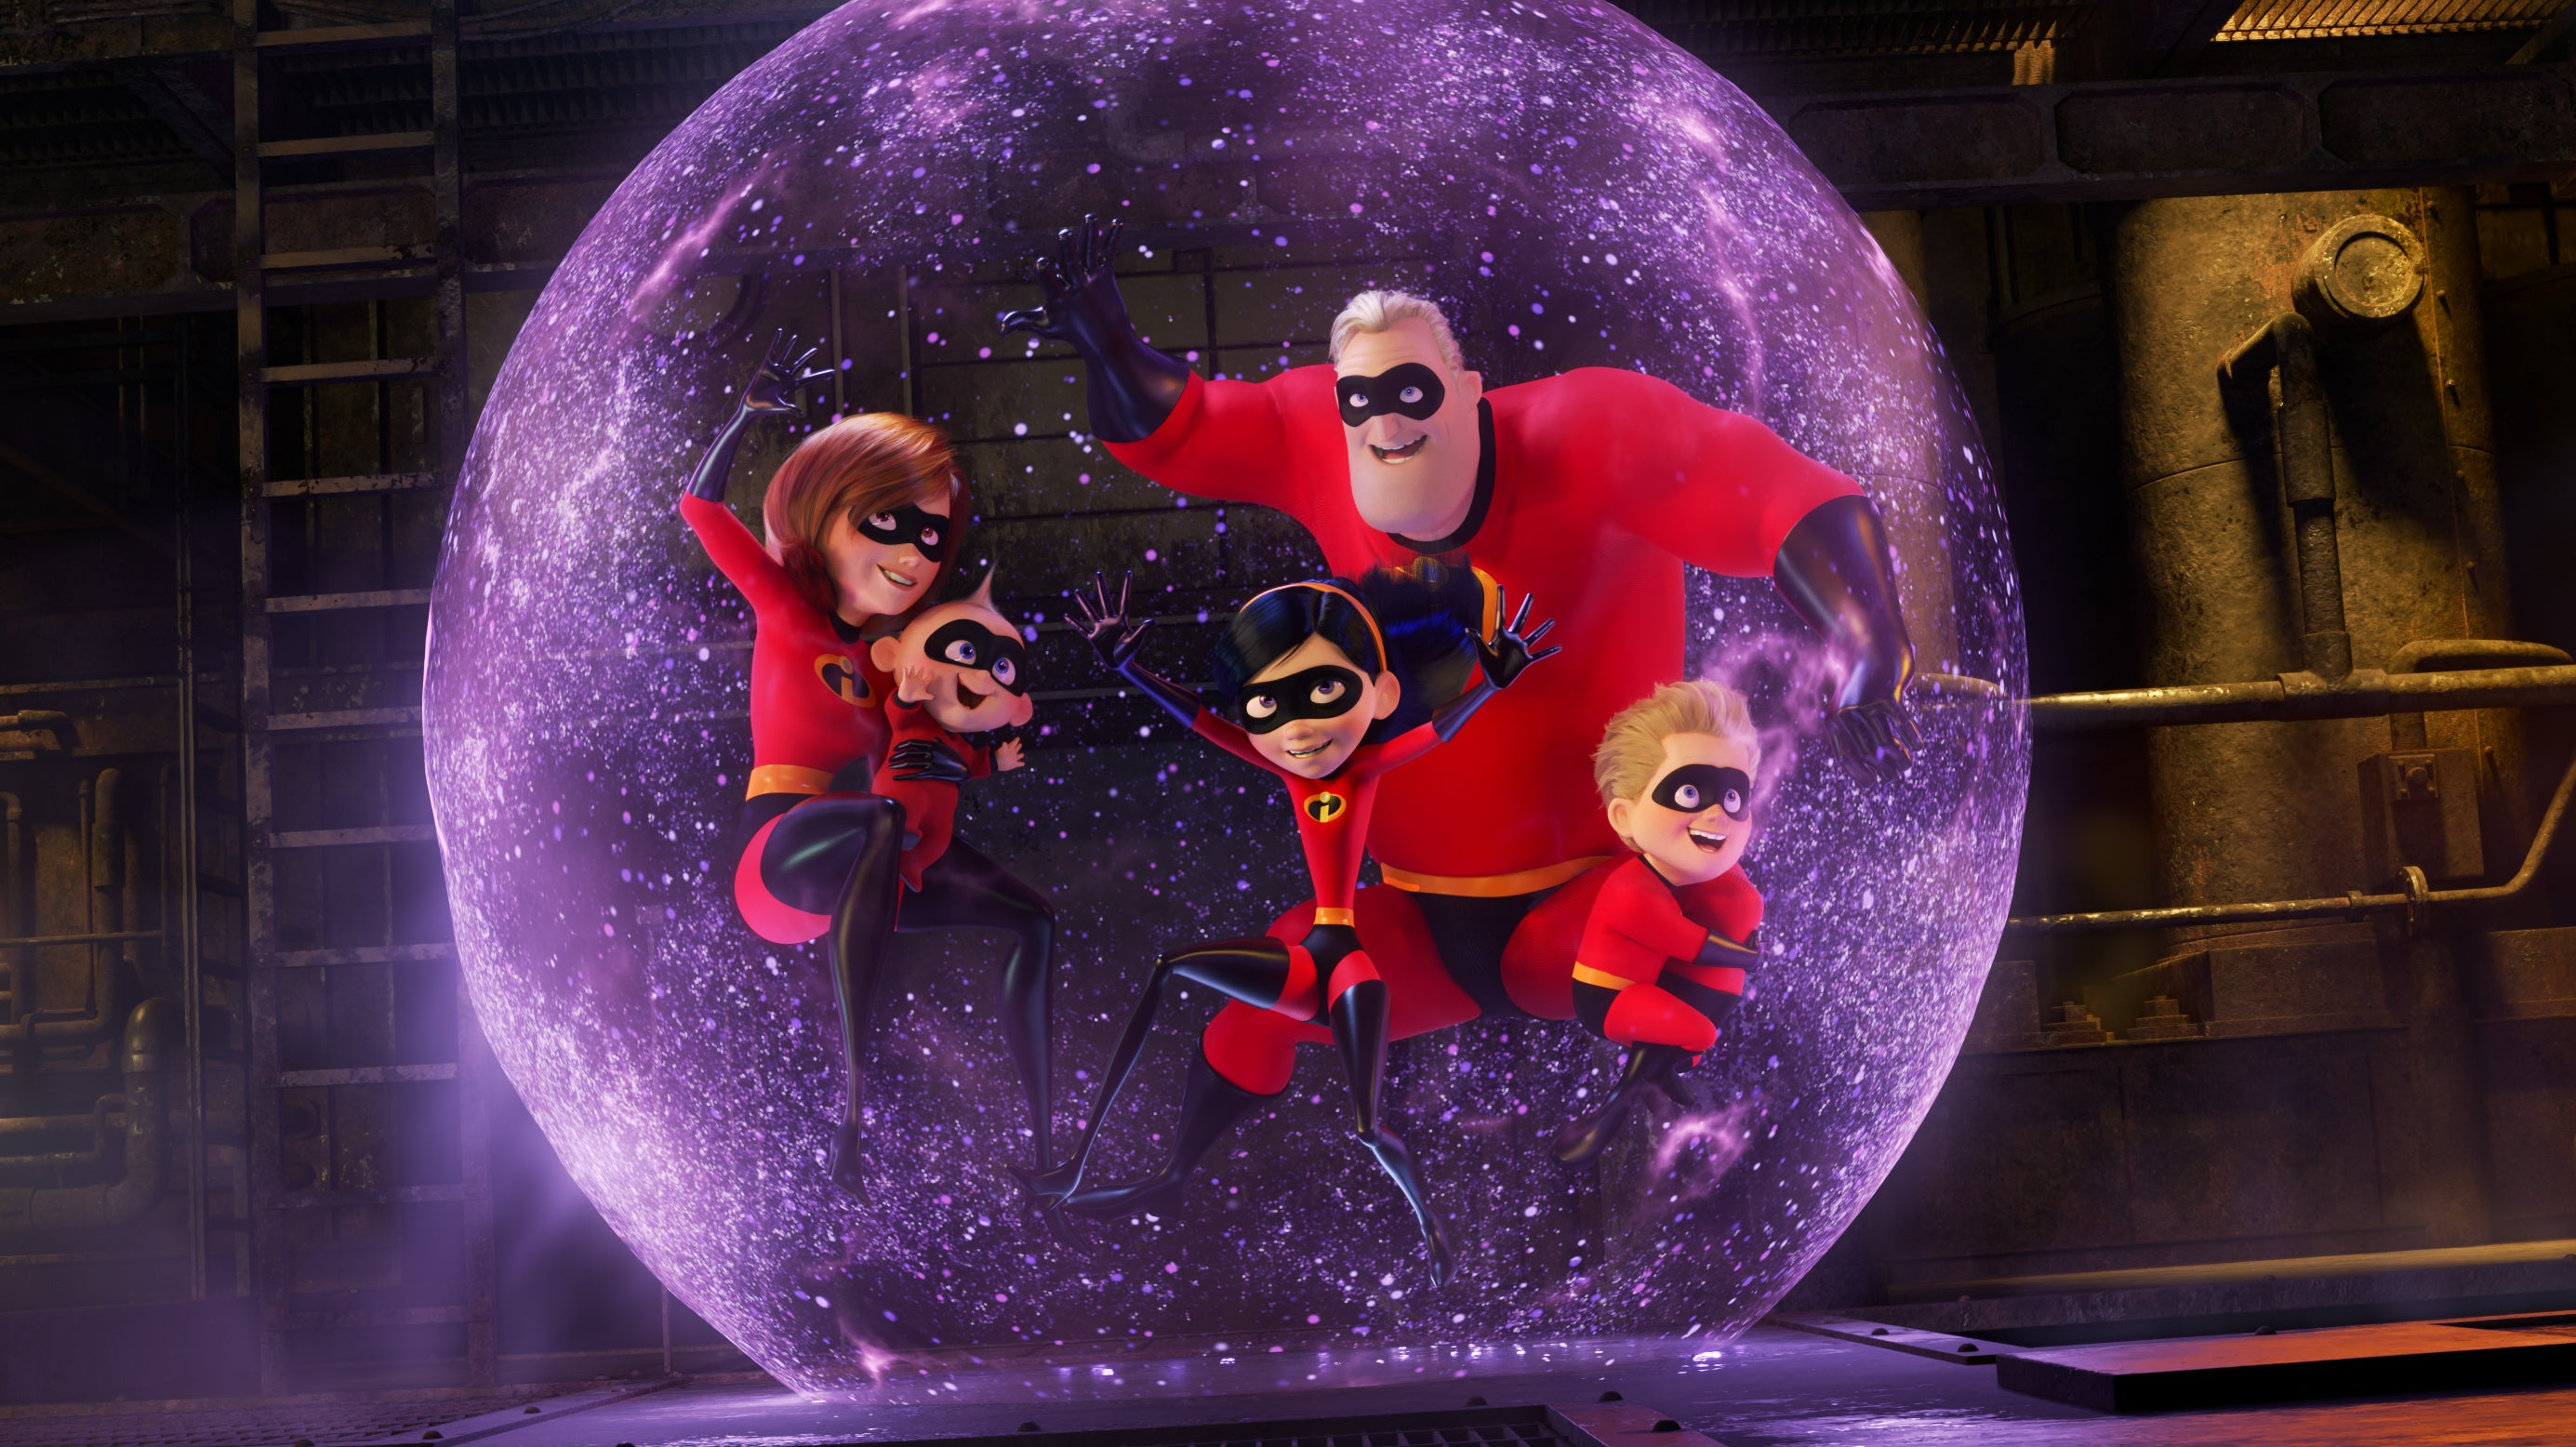 Incredibles 2 Just Had The Most Successful Opening Ever For An Animated Movie